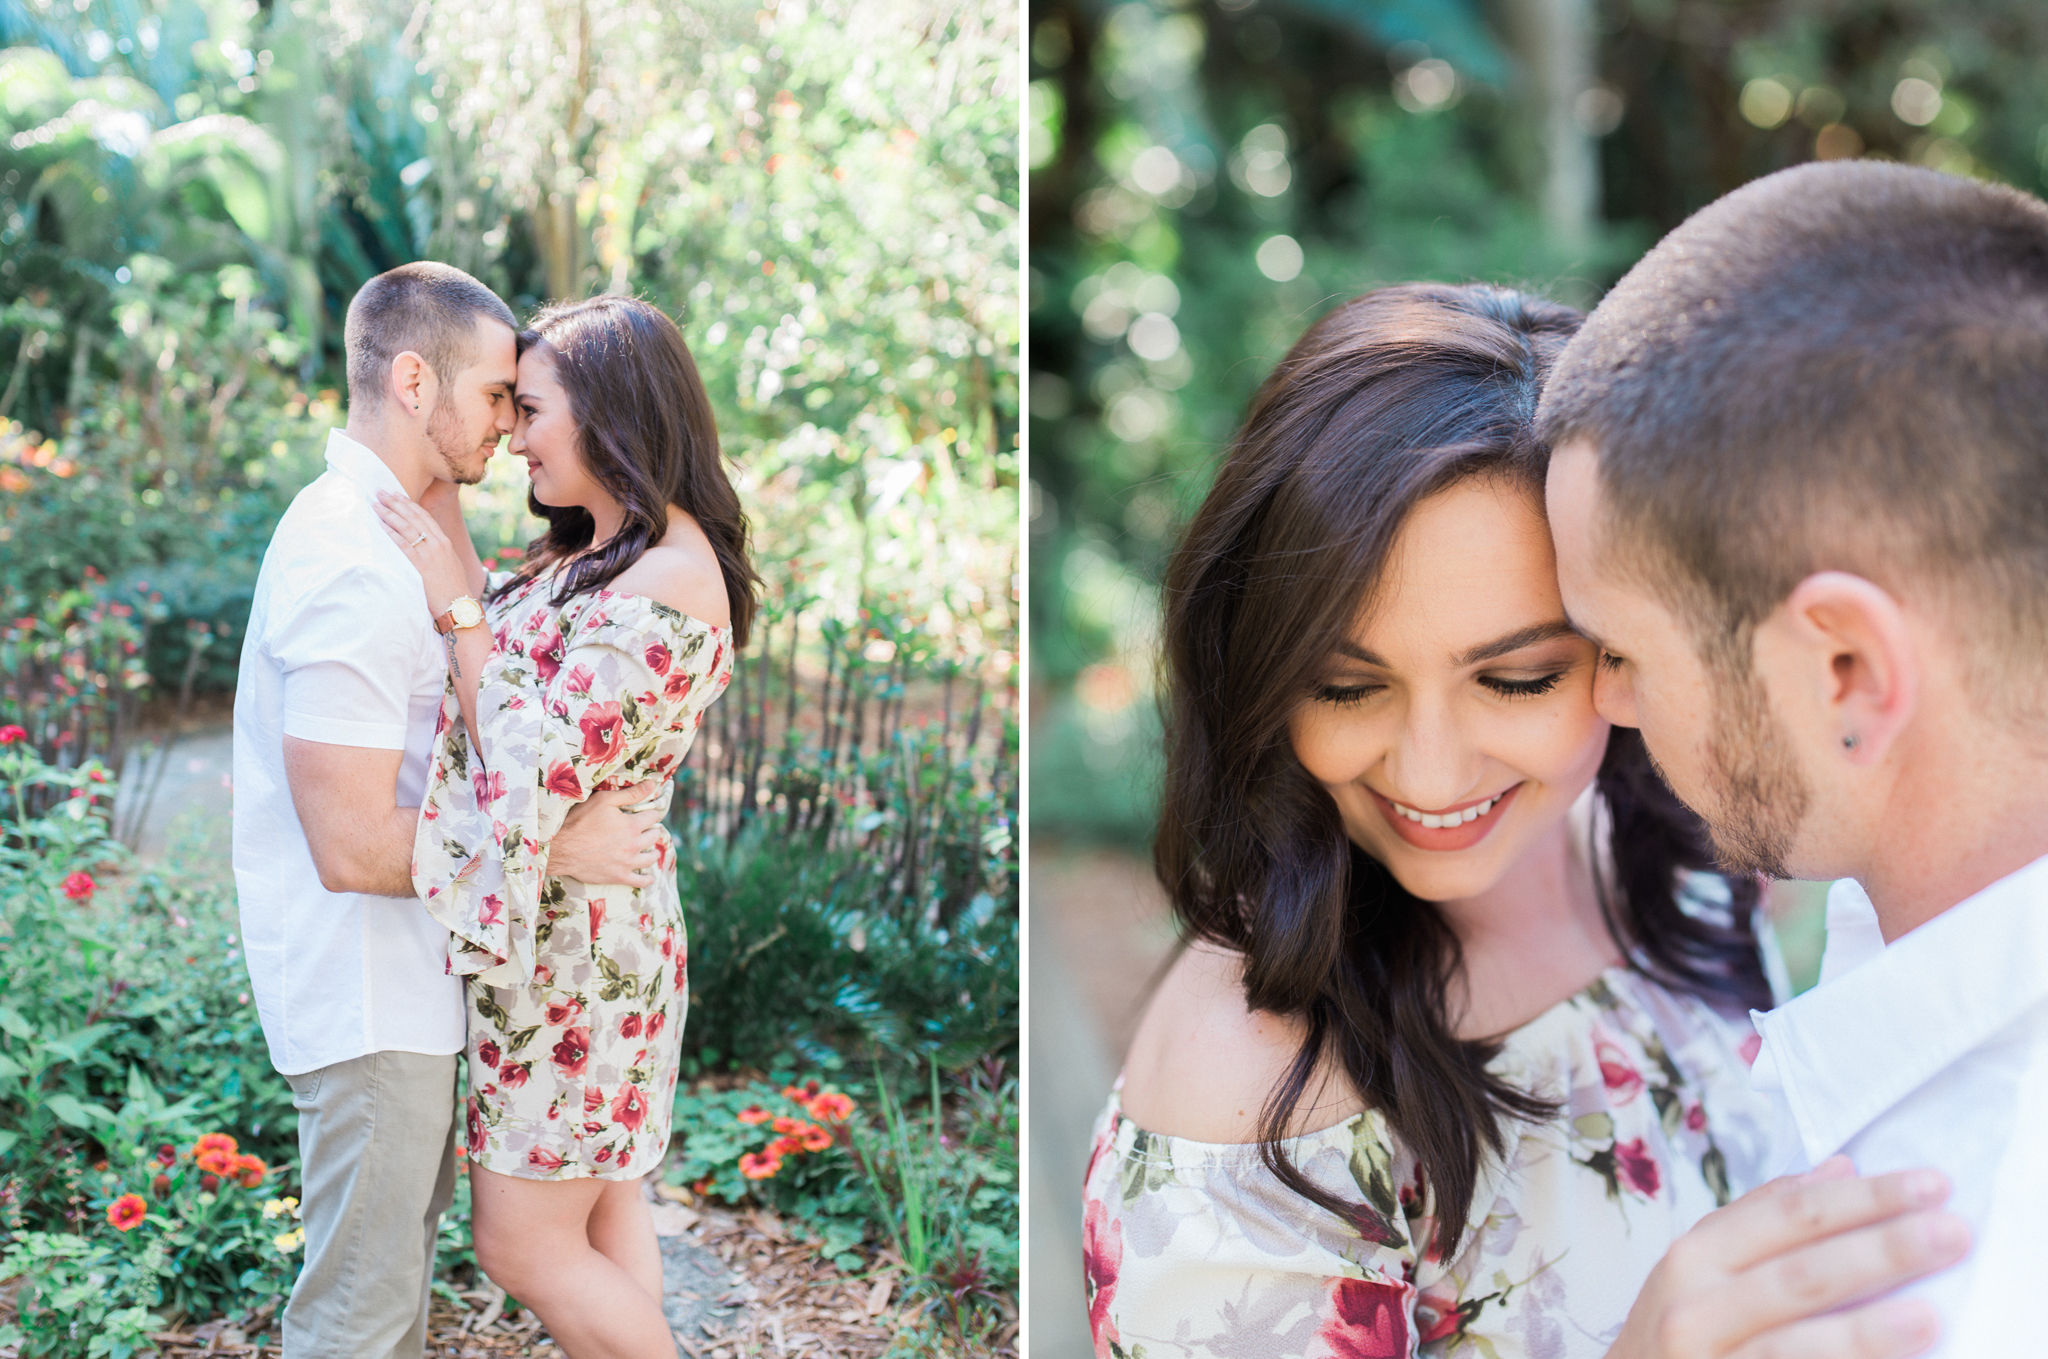 Caitlyn+Mike Engagement Session-WG-1.jpg